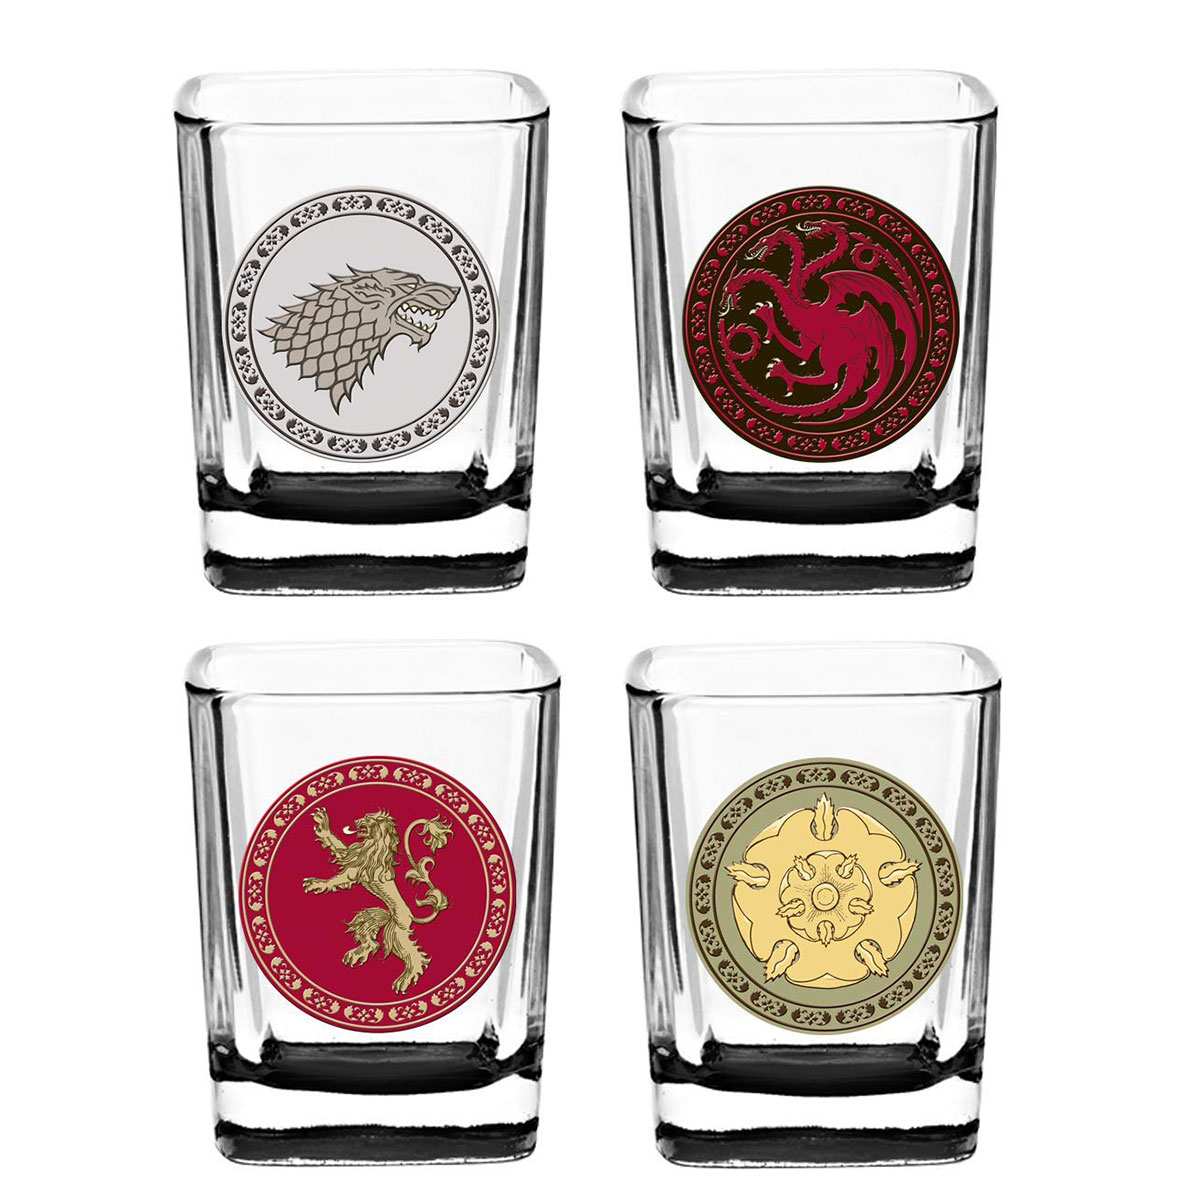 Best Gift for Brother: Game of Thrones House Sigil Shot Glass Set